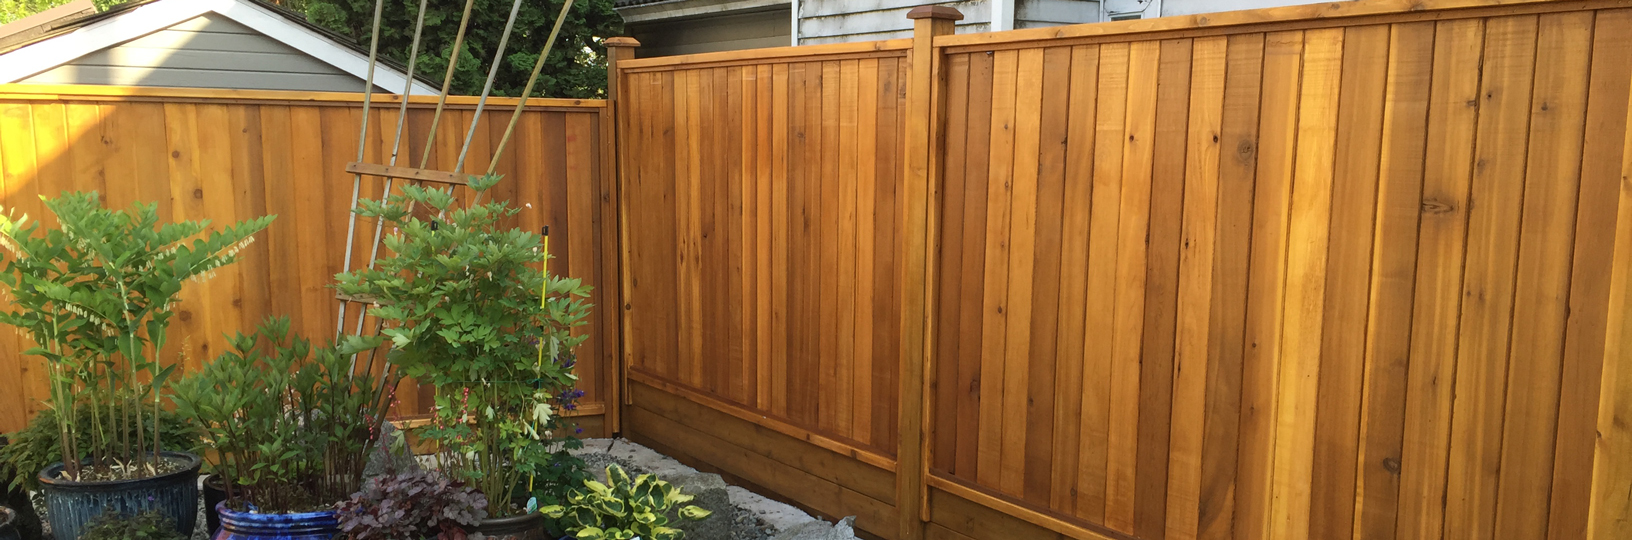 Solid Cedar Fence Panels | Big Red Cedar